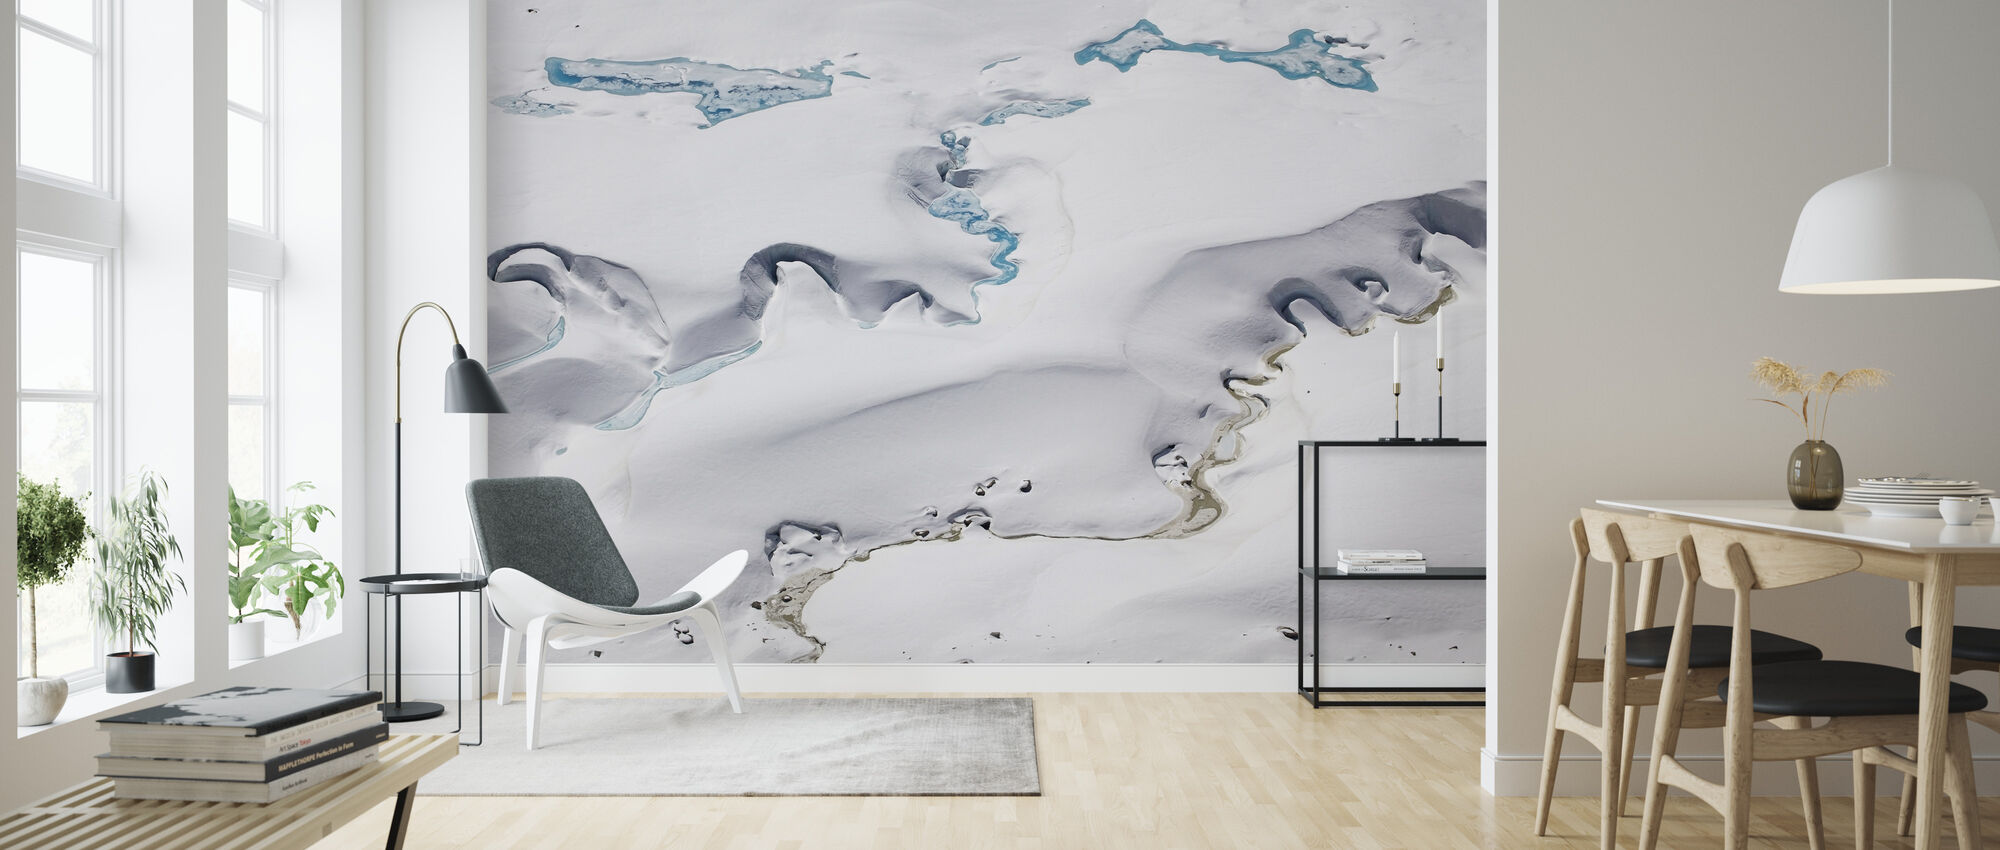 Gorner Glacier with Meltwater Channels - Wallpaper - Living Room